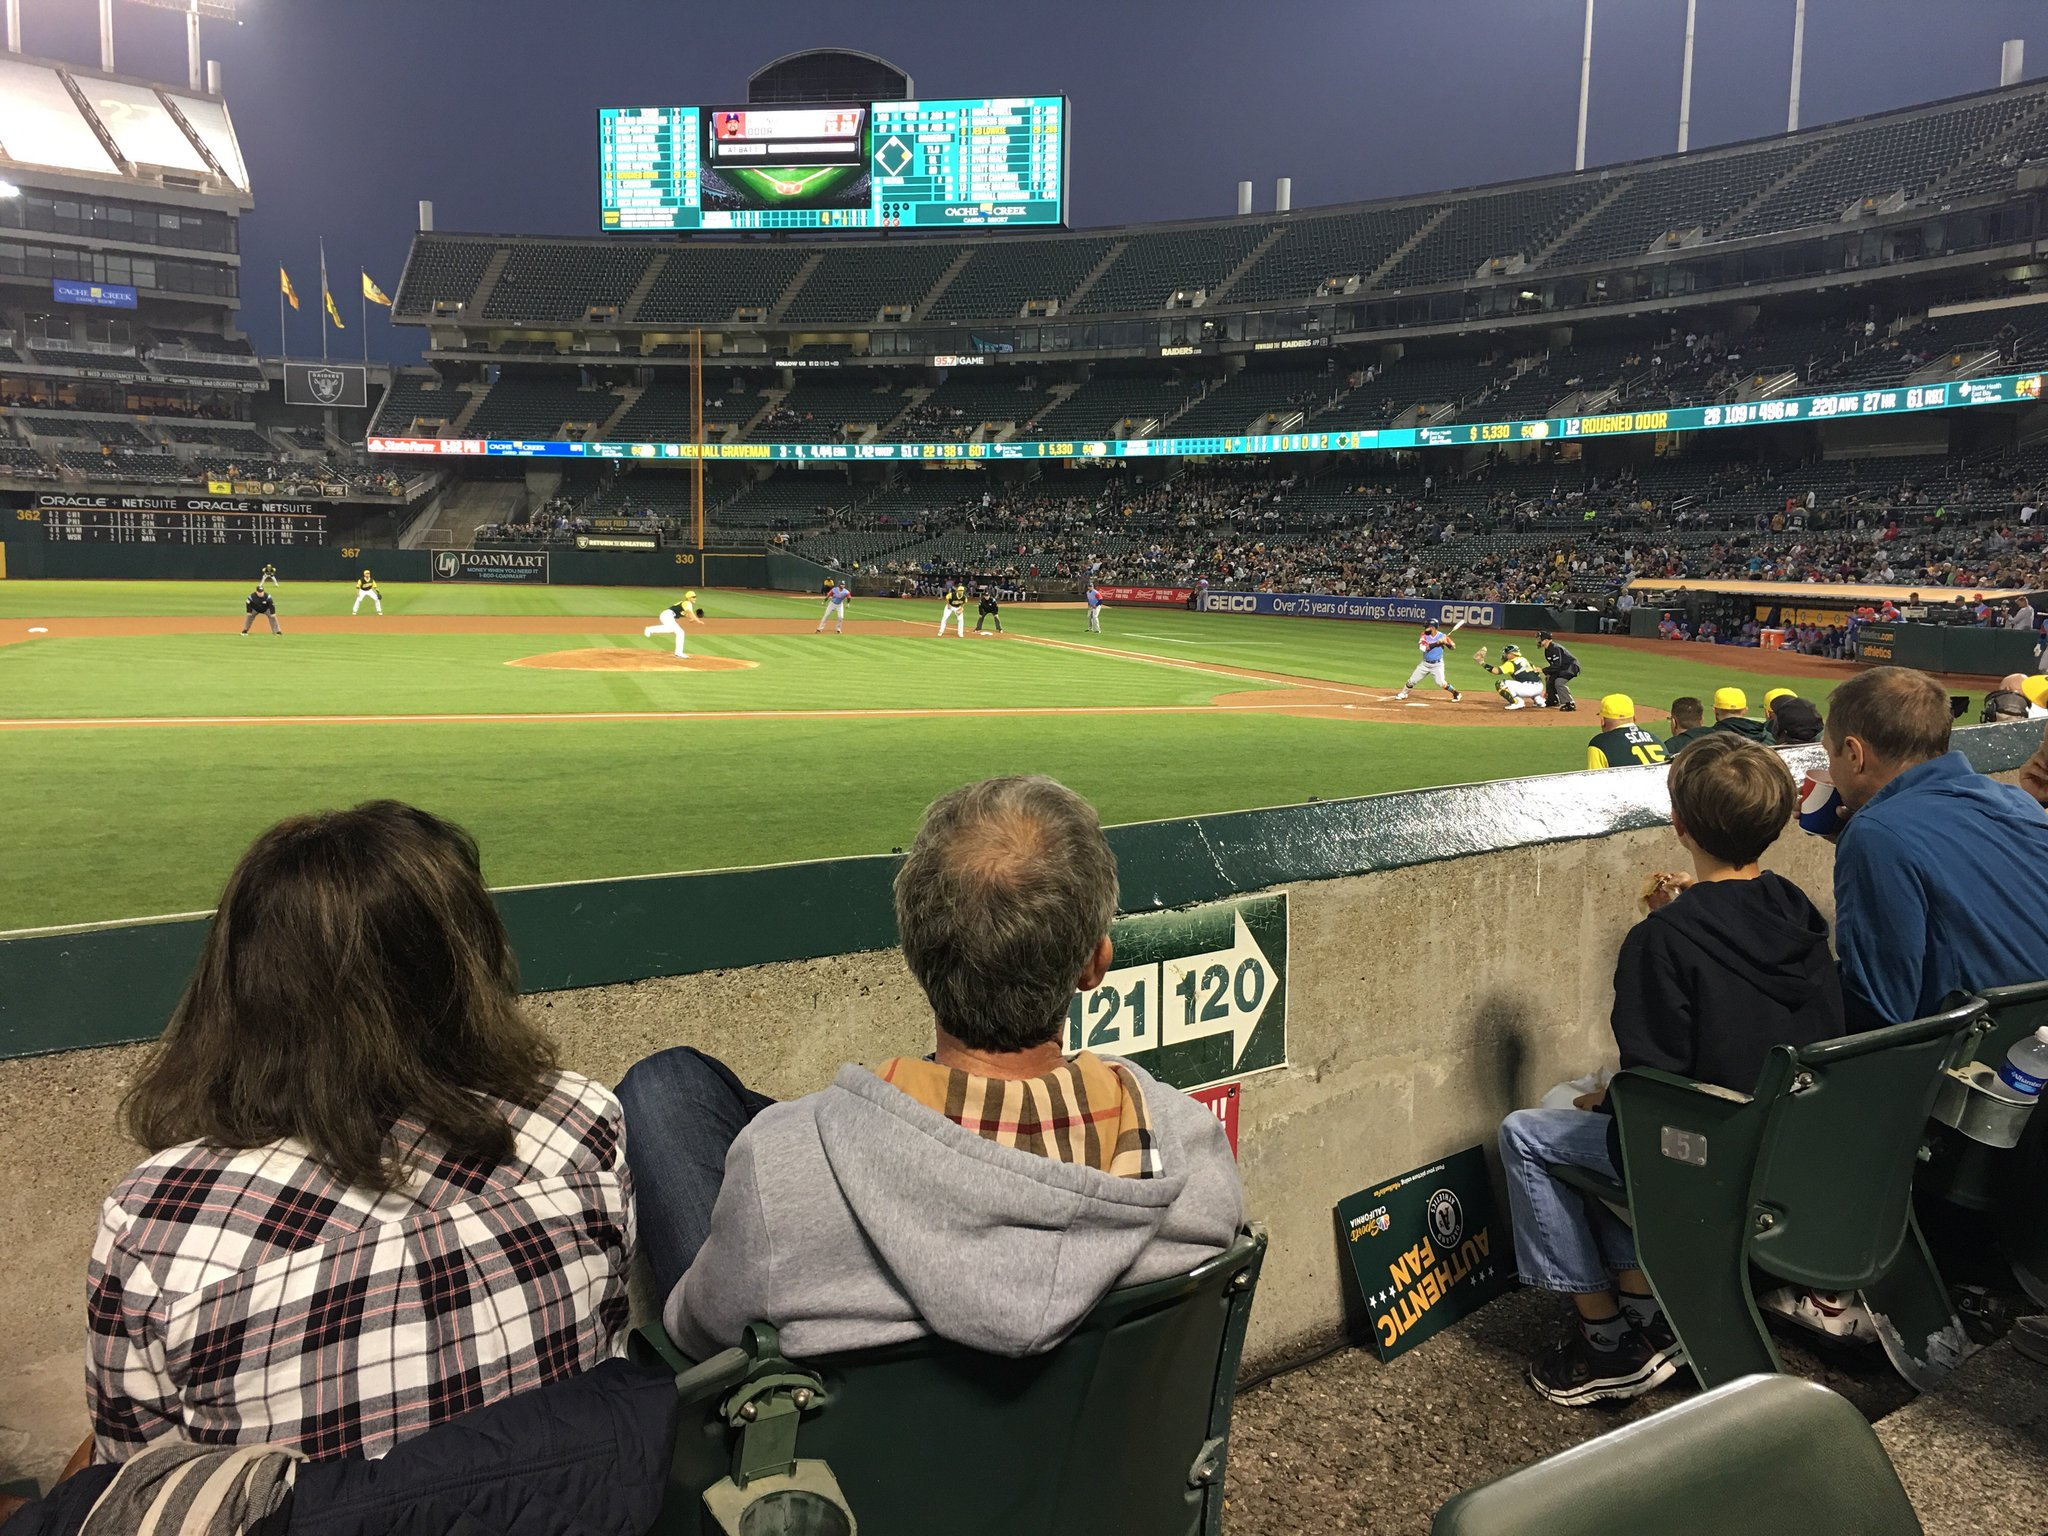 great night for some baseball. thank you kyle and the @Athletics  ������ https://t.co/LbTfDD6OIq